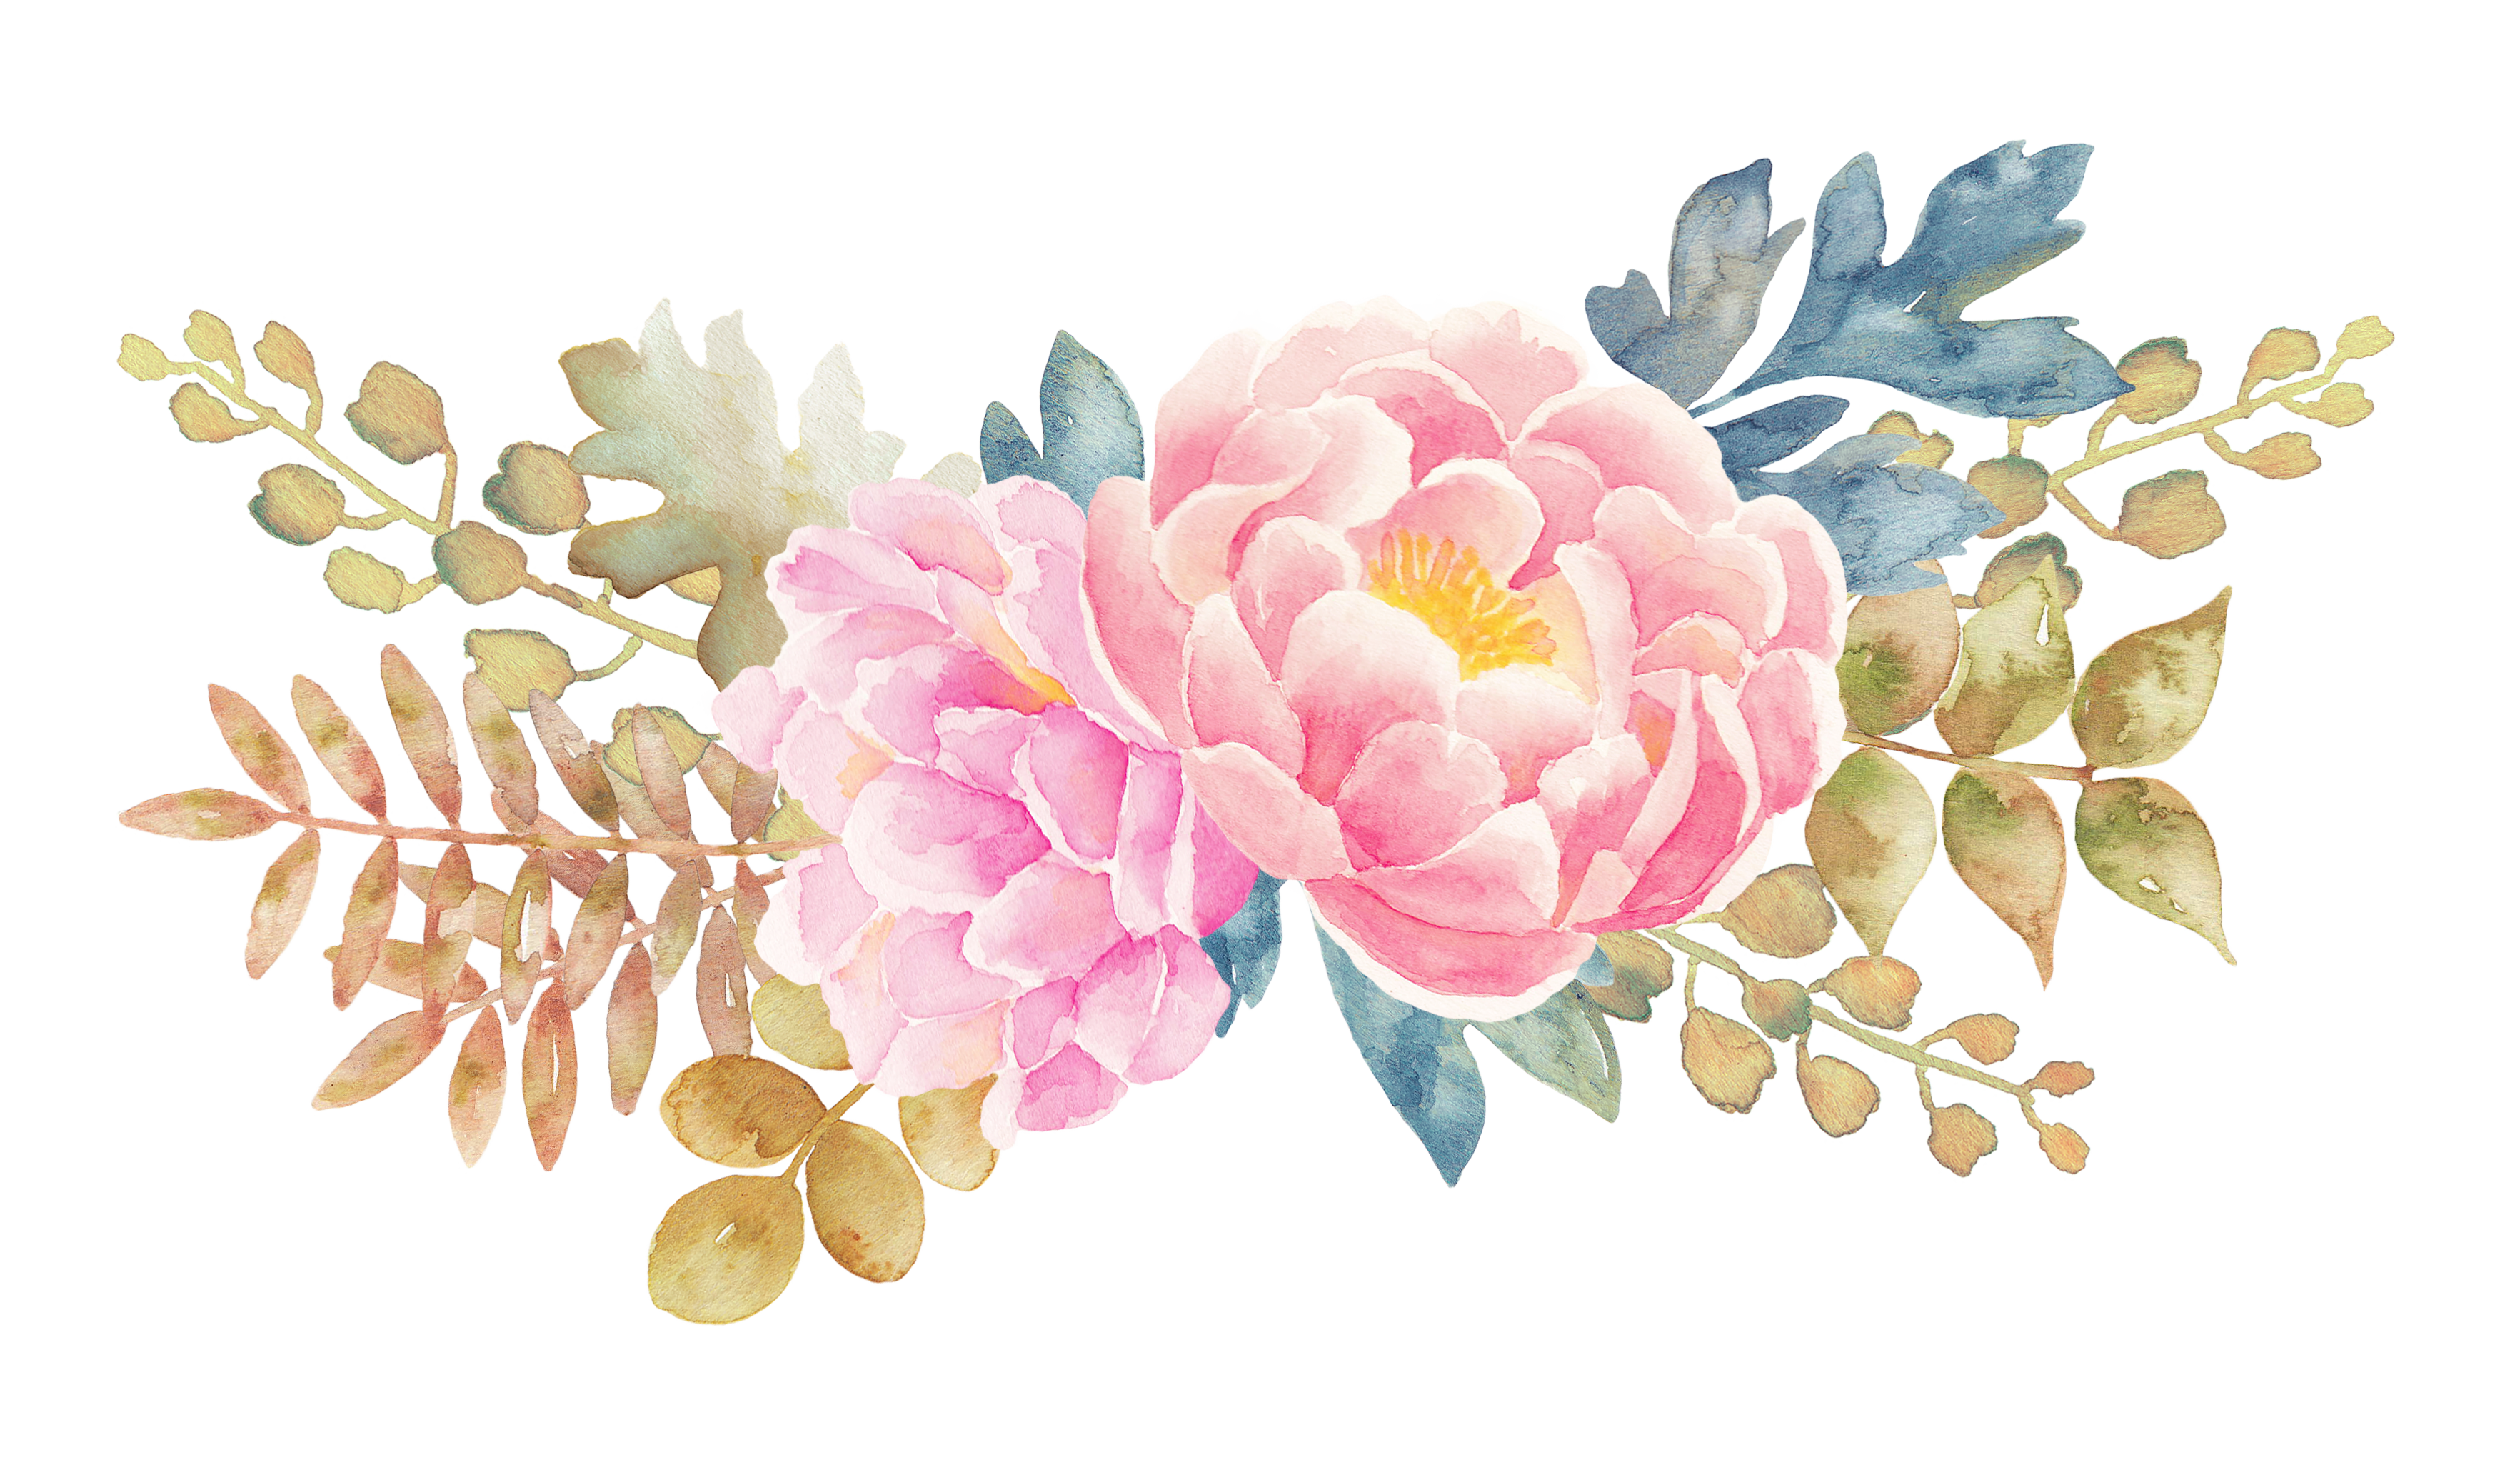 Watercolour pinterest. Pink watercolor flower png picture free stock